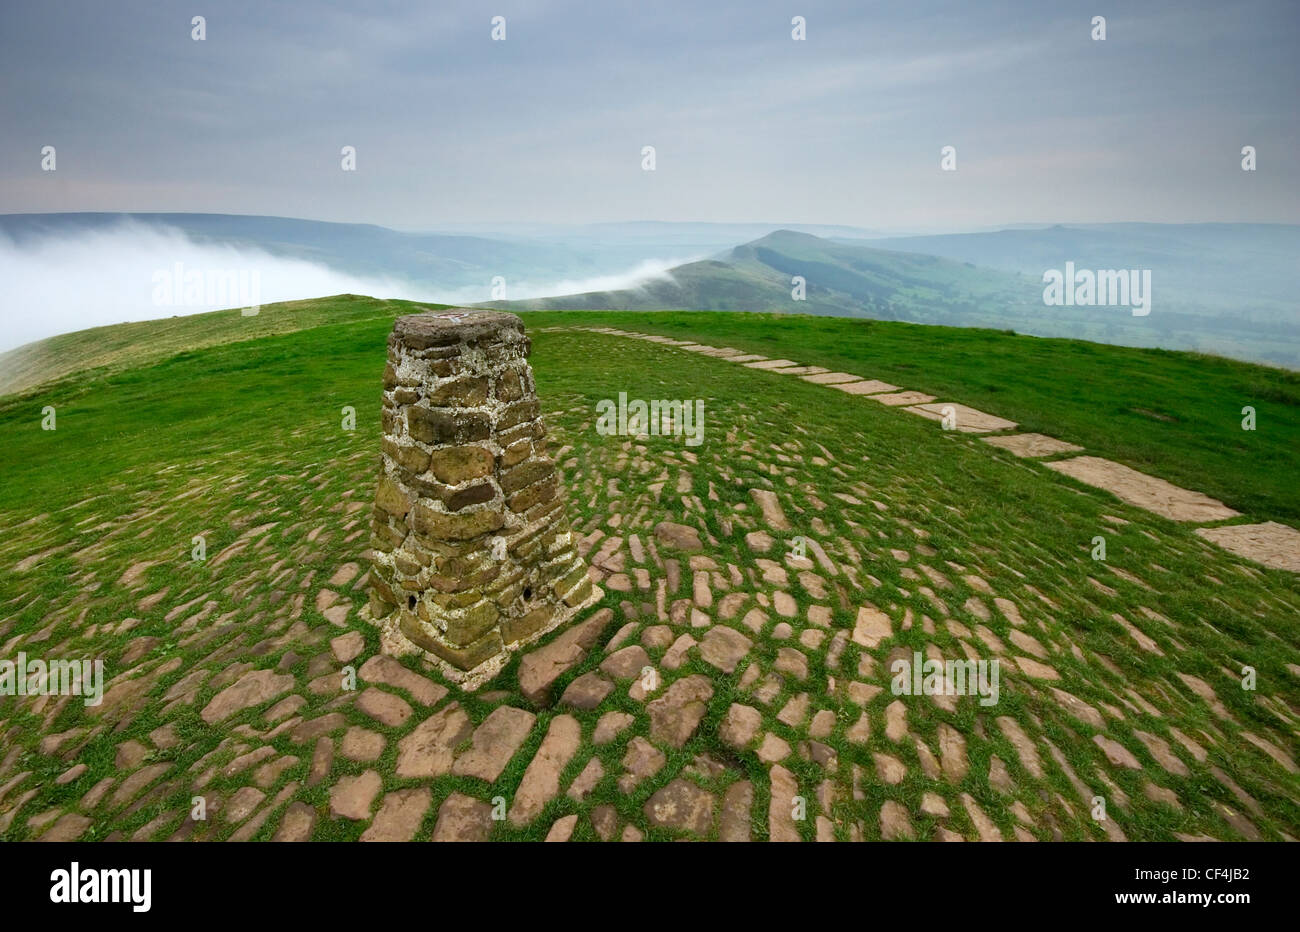 A misty morning at the Mam Tor trig point in Derbyshire. - Stock Image